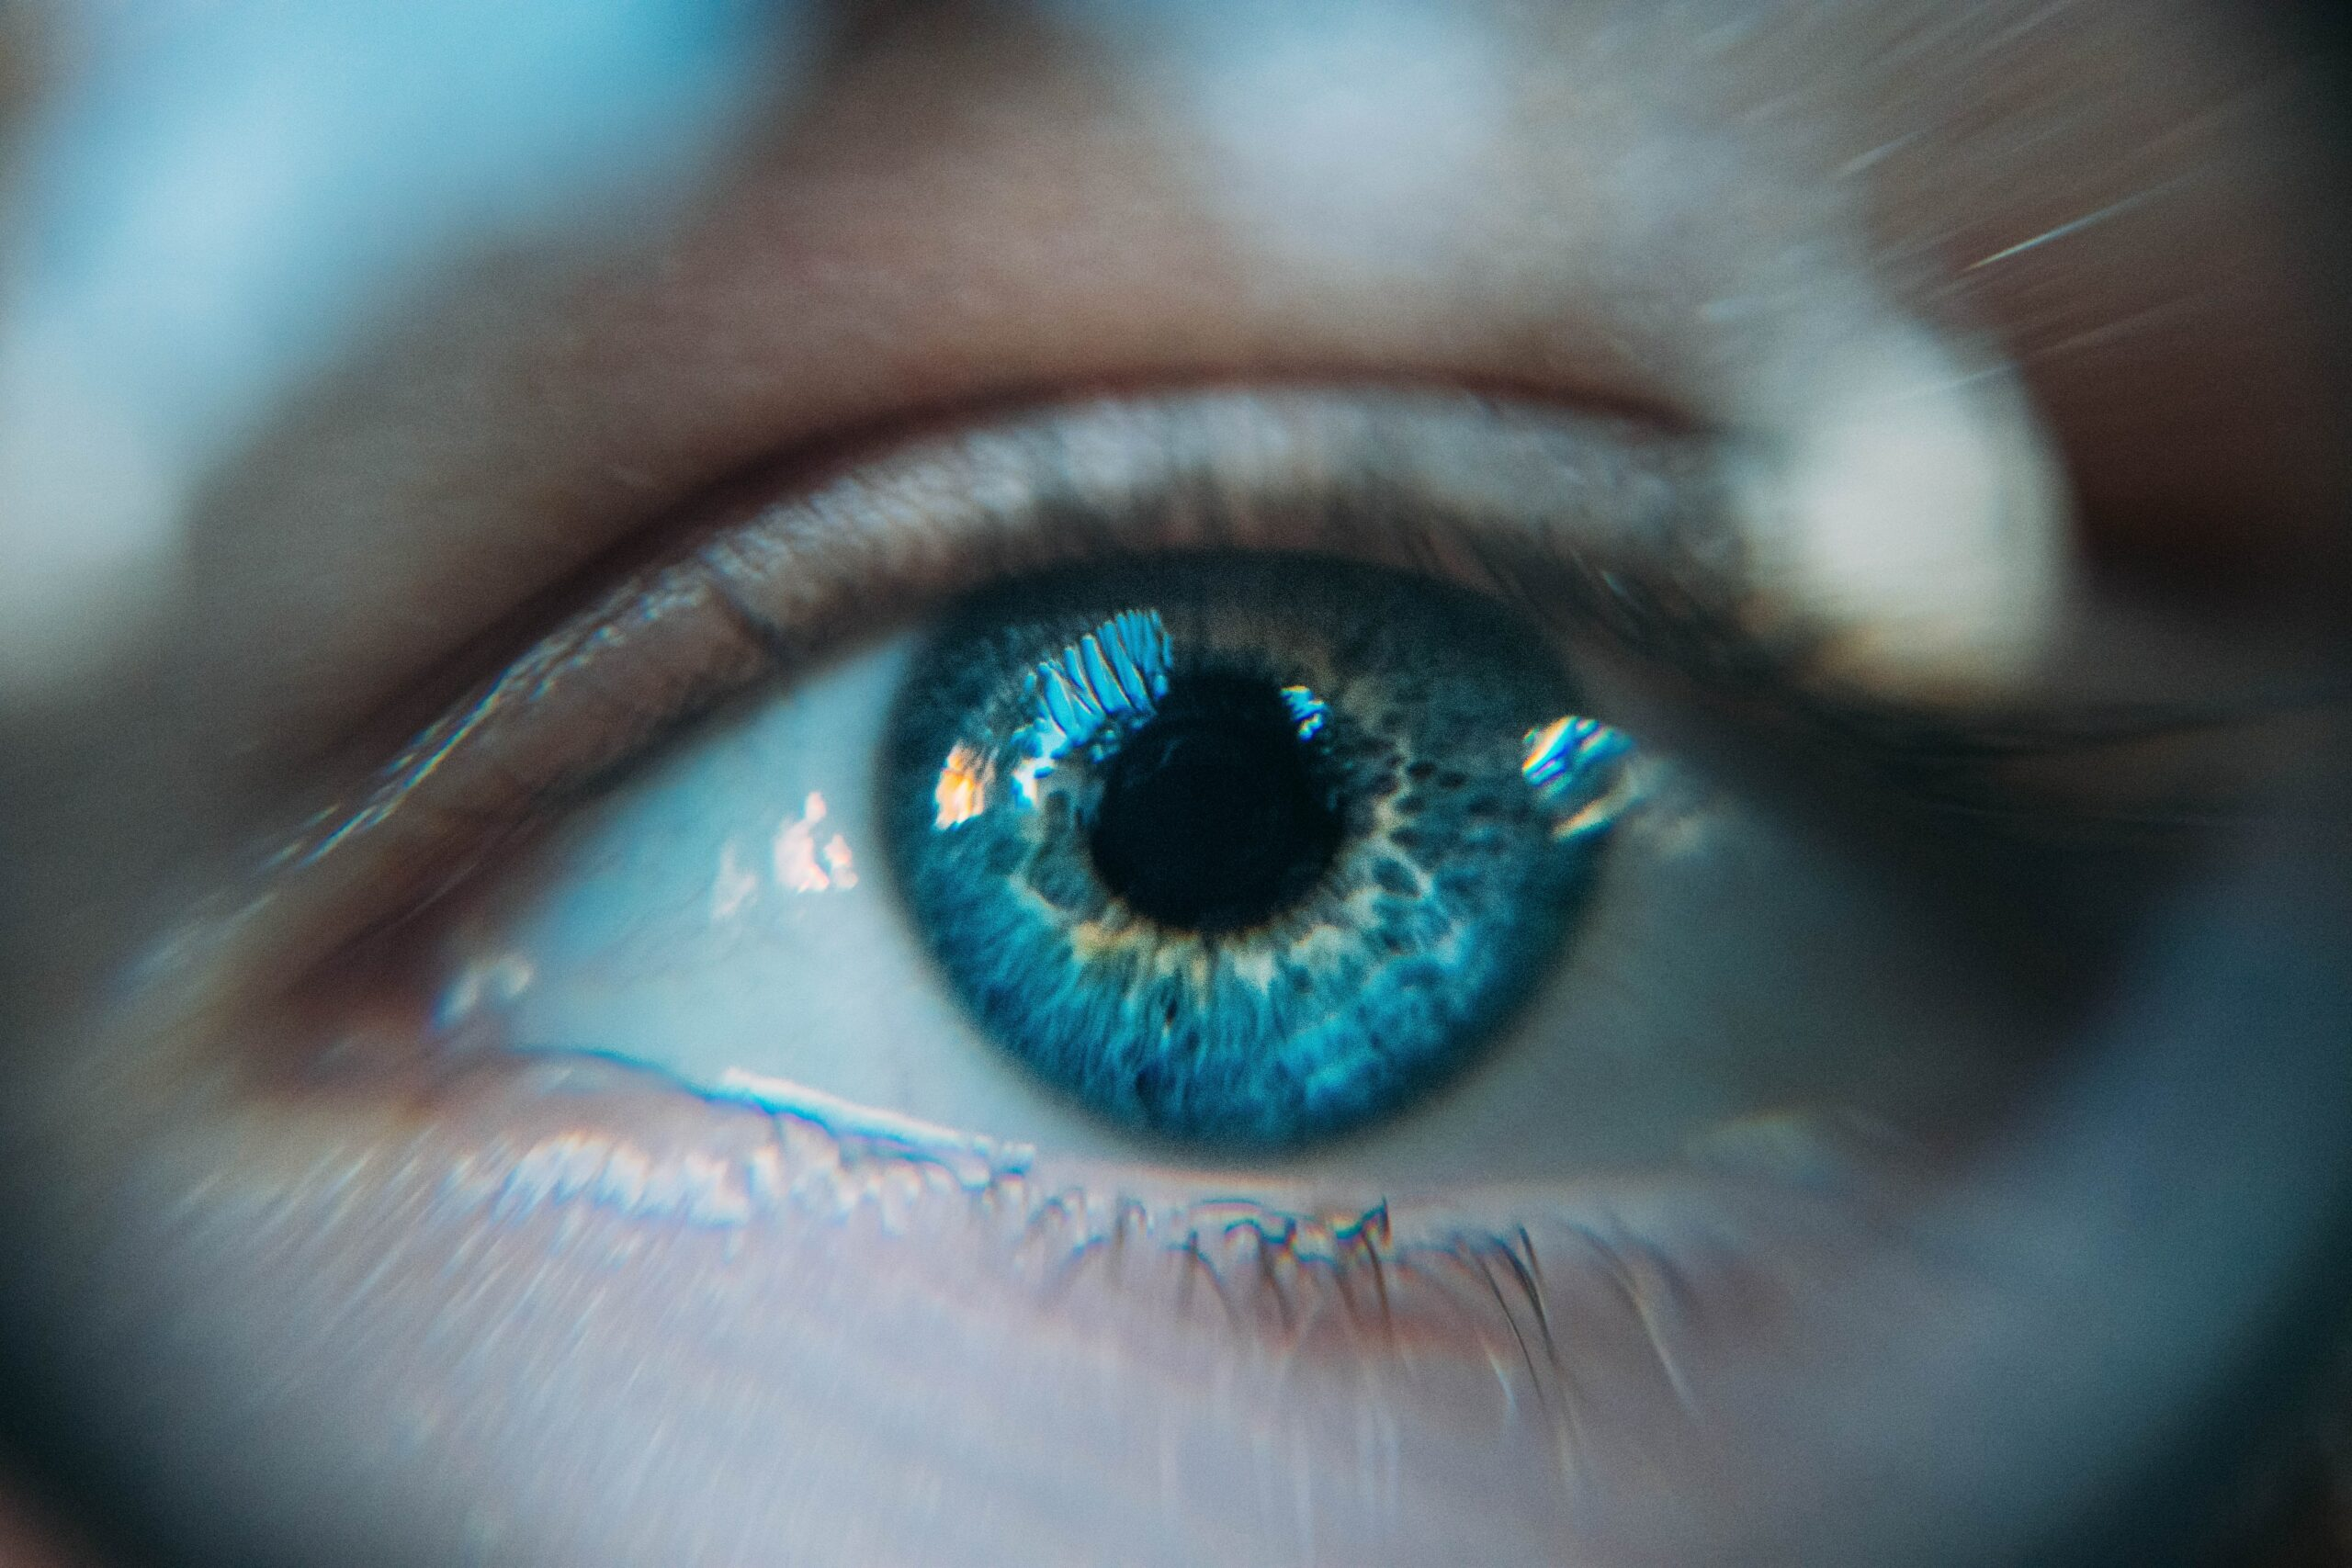 up-close-image-of-human-eye